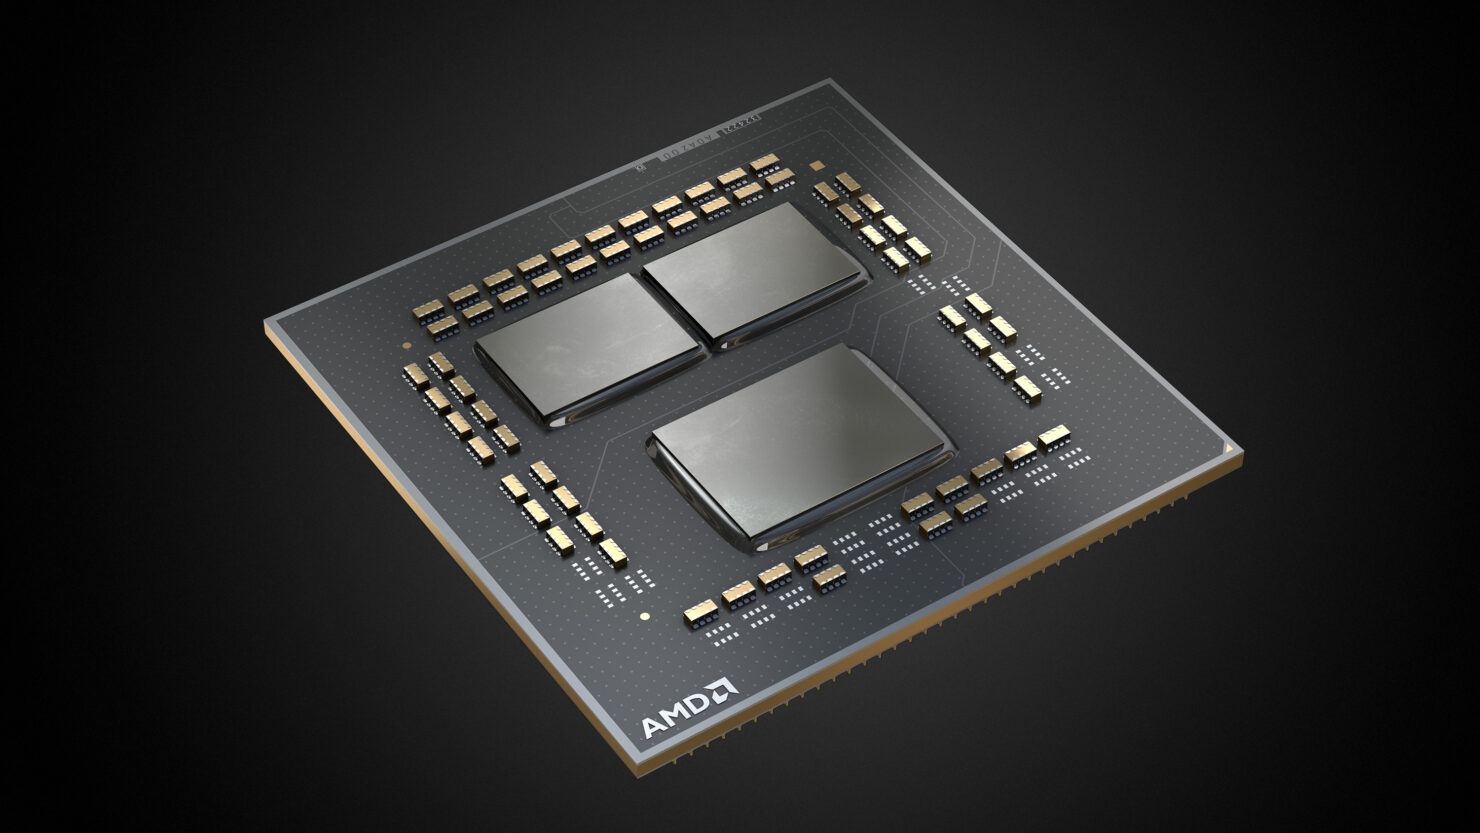 amd-agesa-120.1-patch-a-bios-firmware-starts-rolling-out-for-x570-&-b550-motherboards,-fixes-ryzen-5000-usb-compatibility-issues